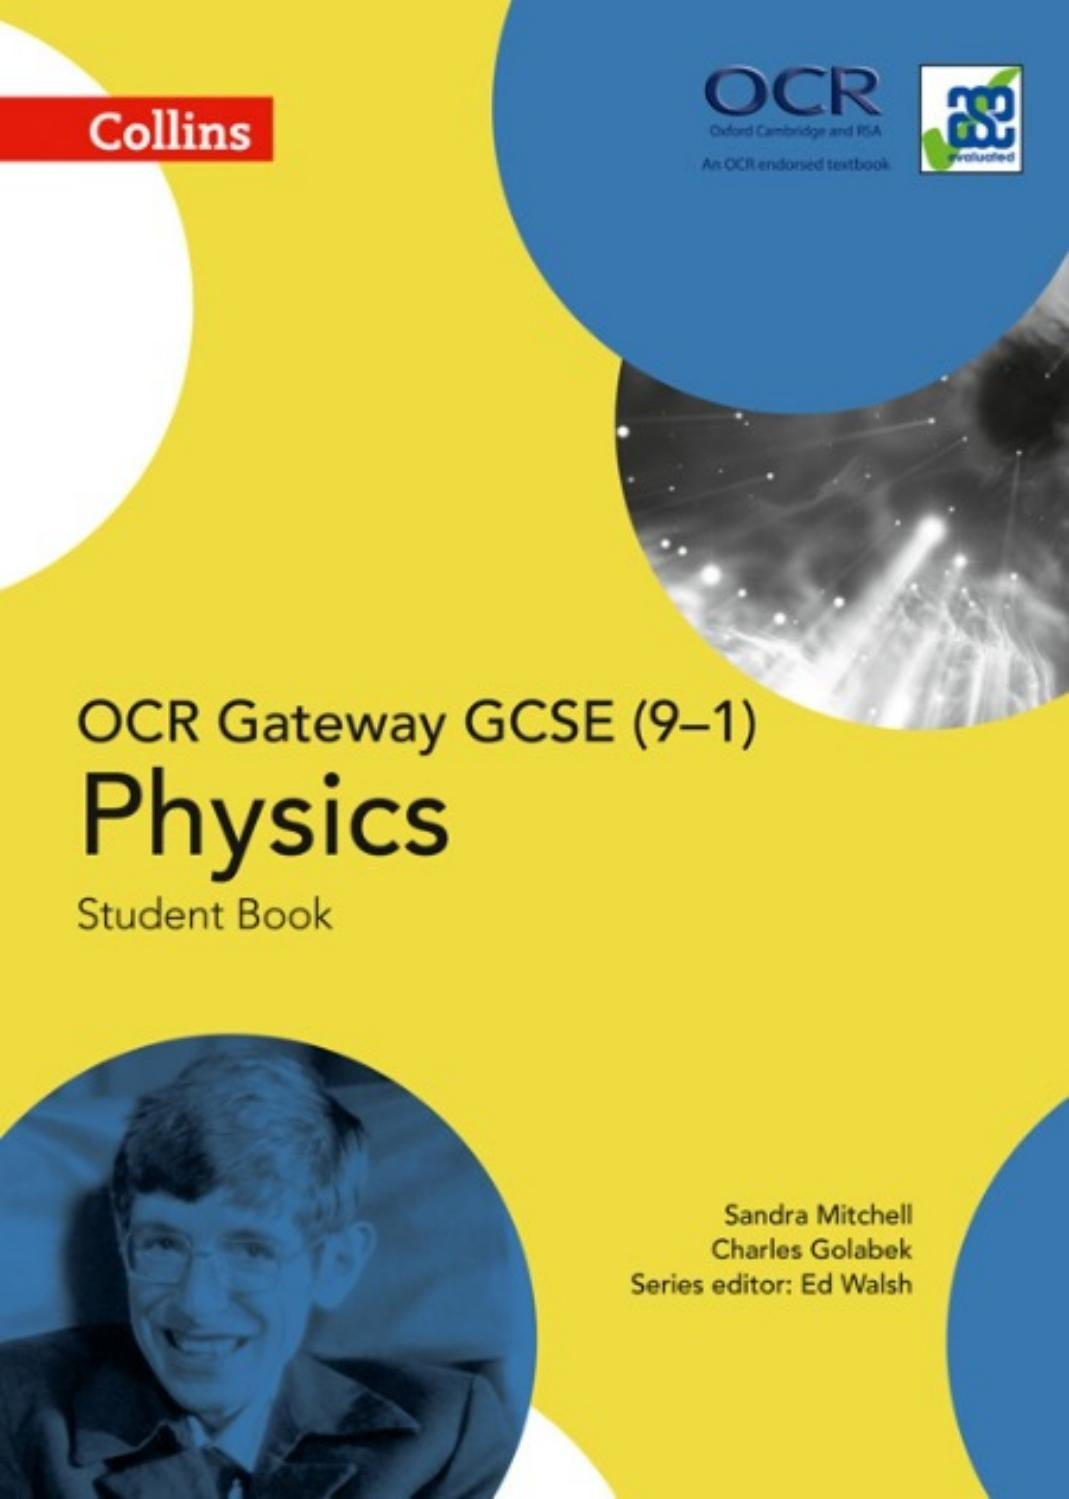 Physics ocr coursework best home work ghostwriting services us